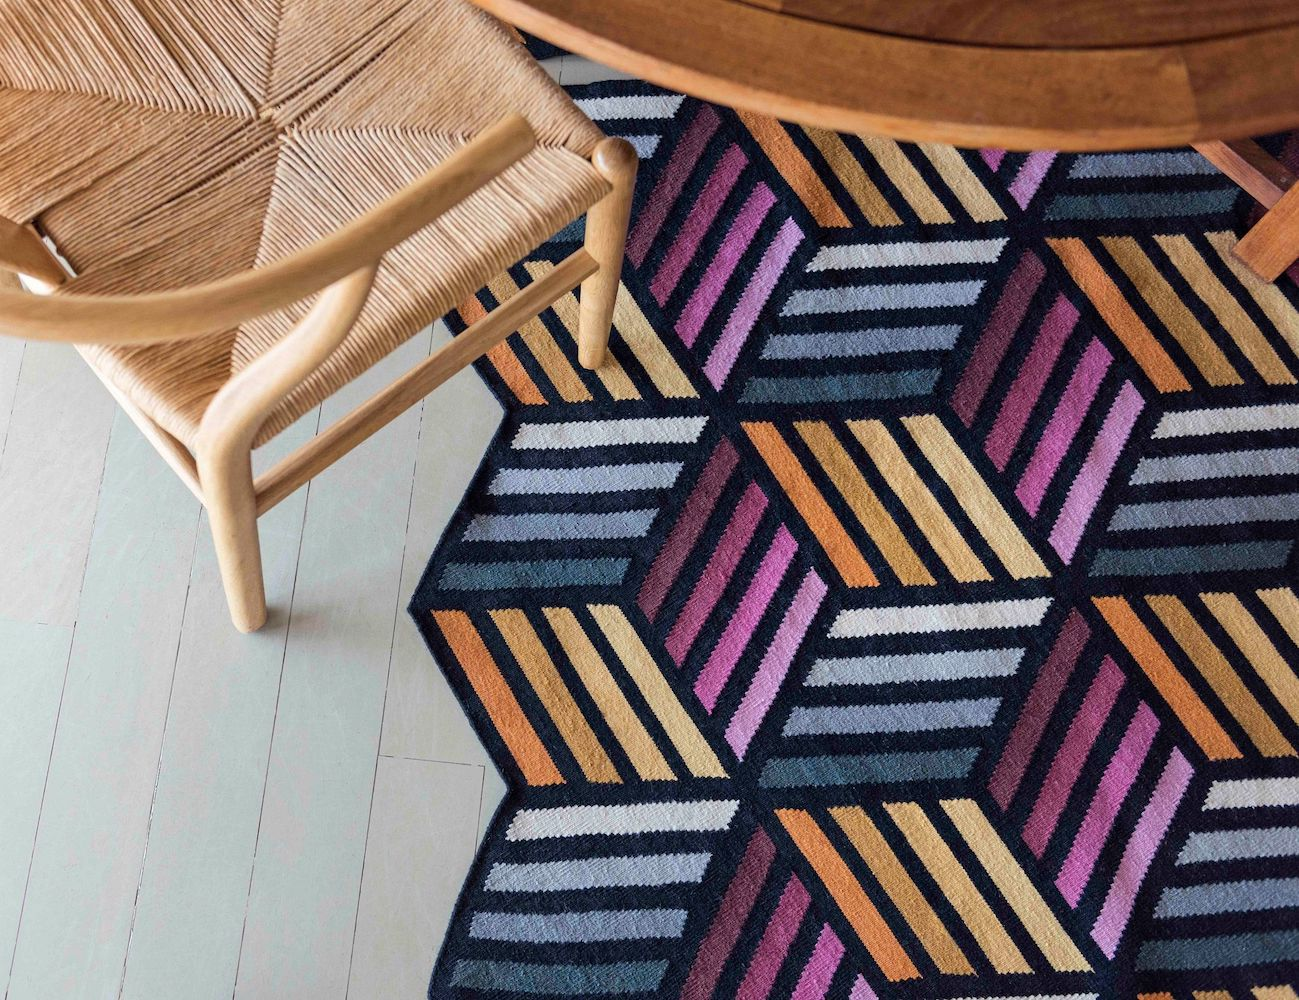 Parquet Modular Rug can change shape and size